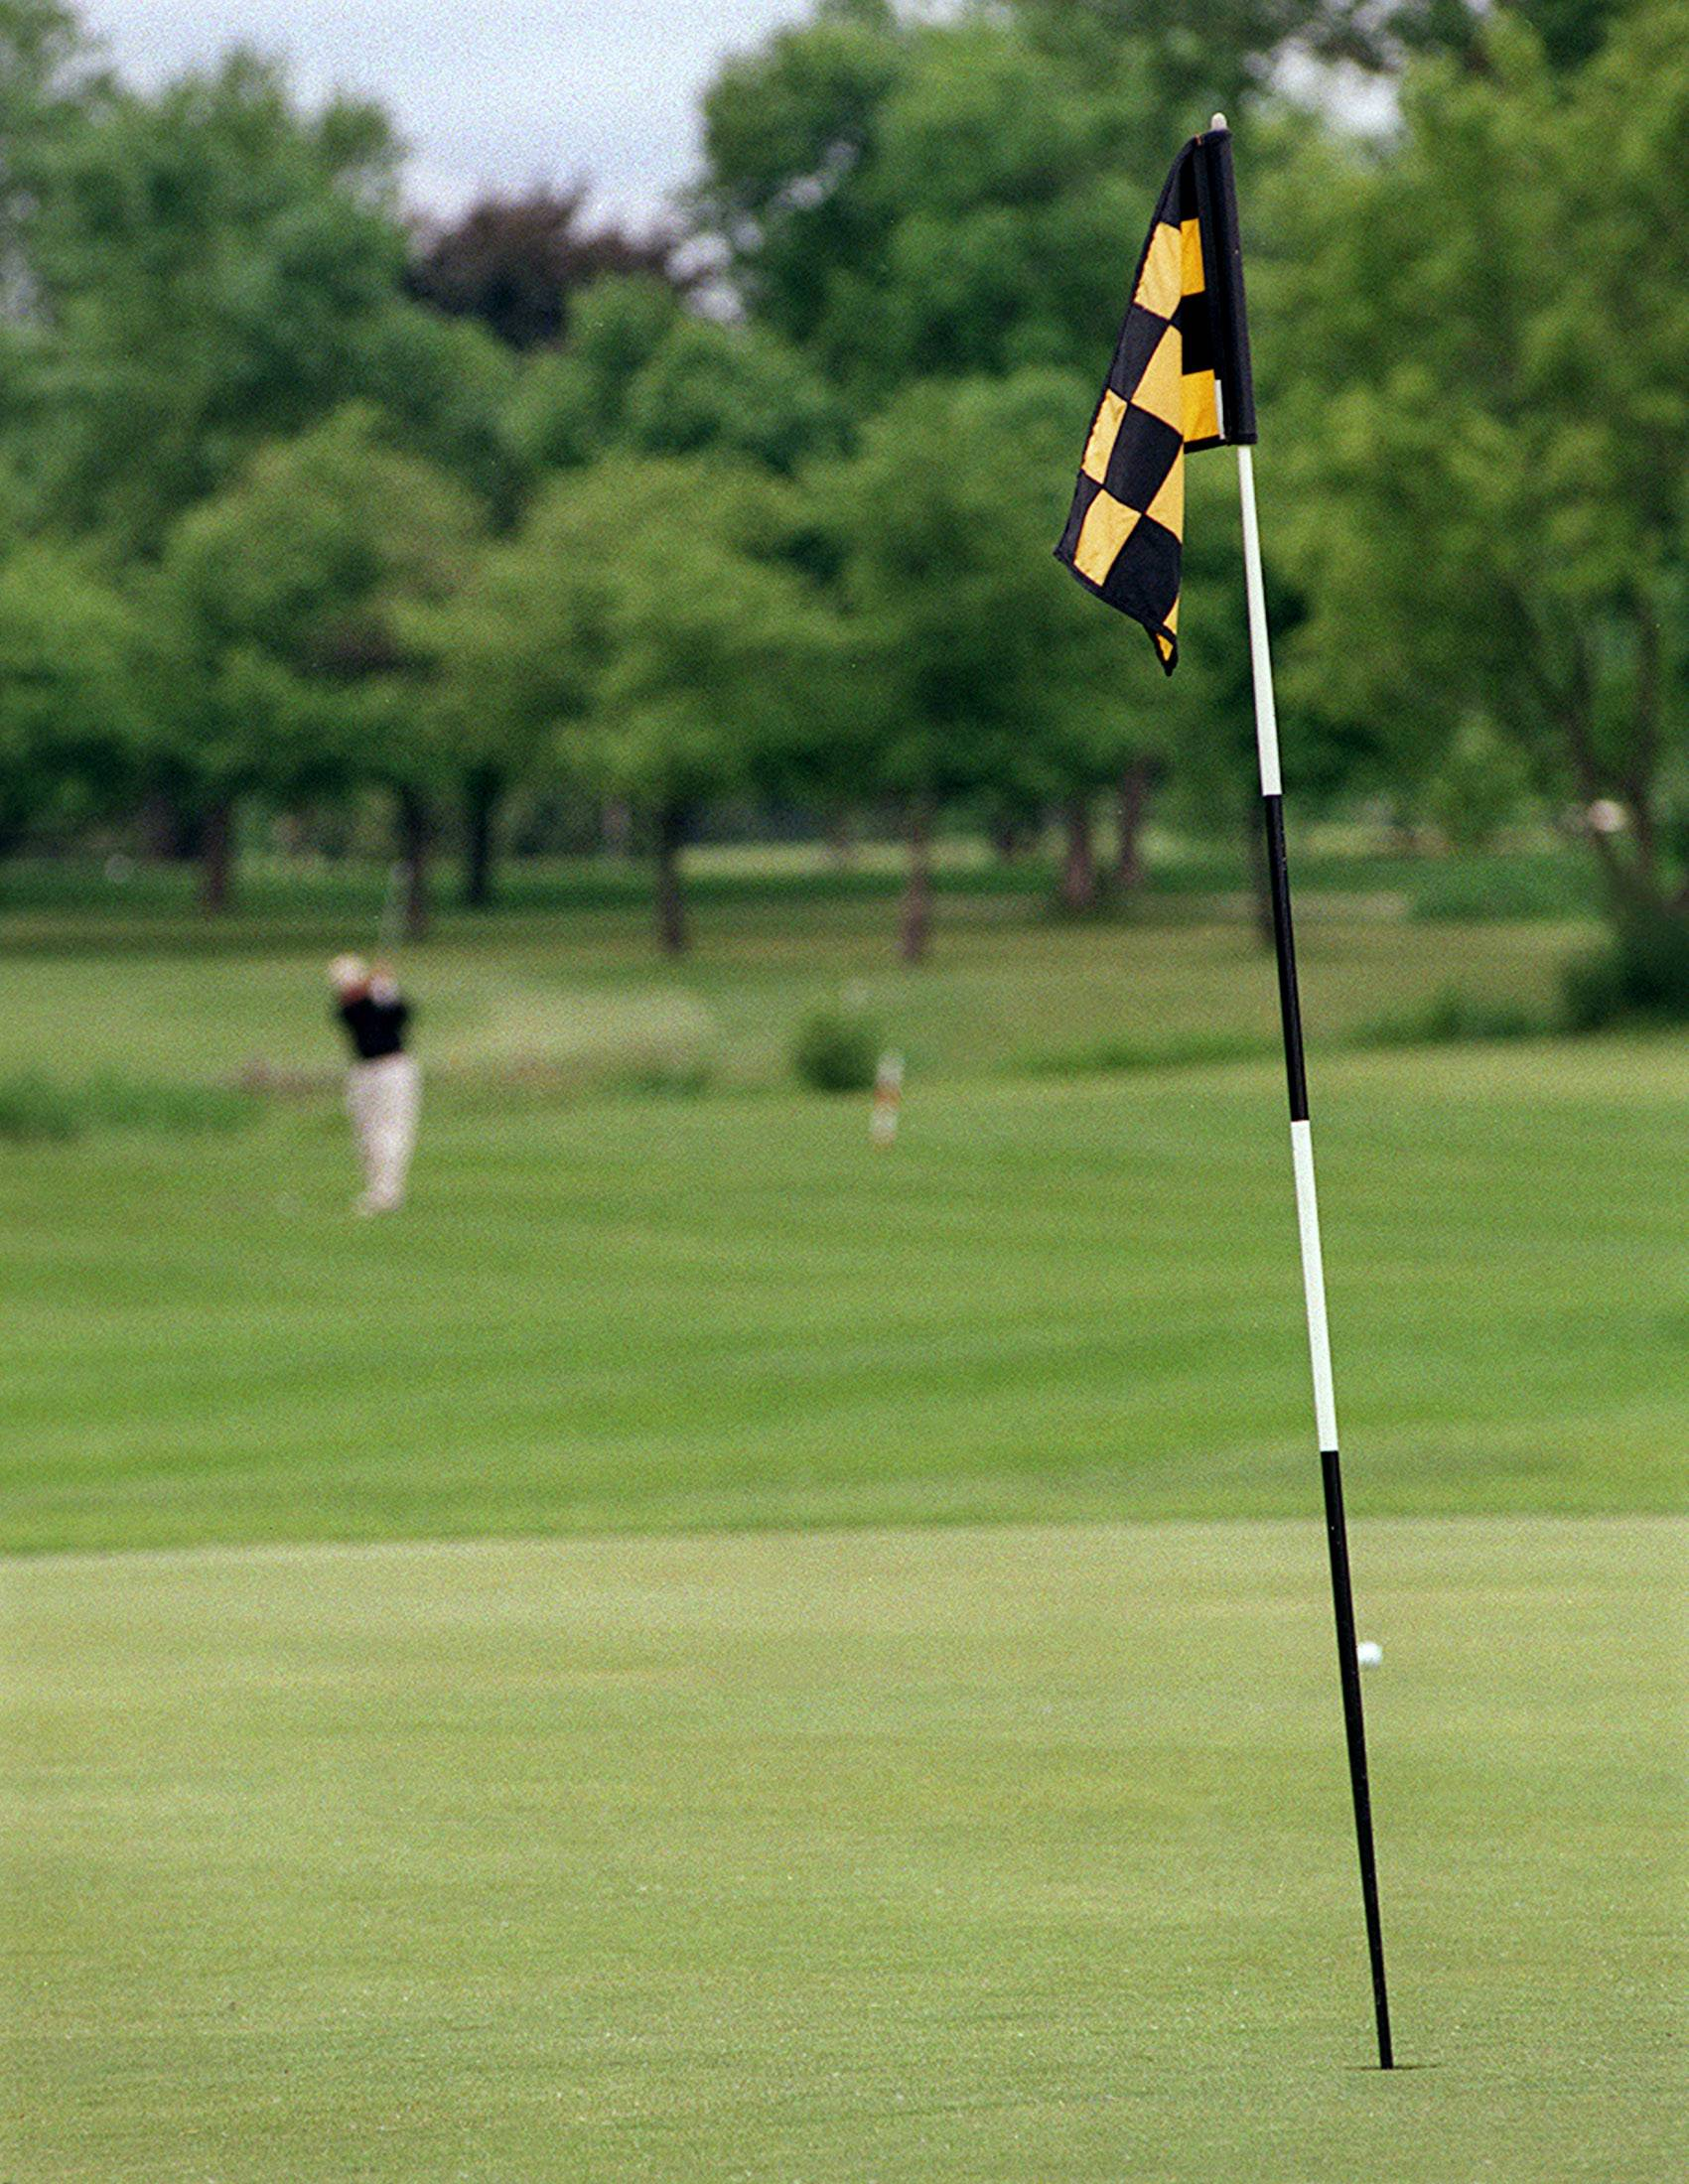 Buffalo Grove officials are outsourcing maintenance of the Buffalo Grove Golf Course and The Arboretum Club in hopes of saving $398,000 this year and as much as $1.2 million over the next five. The move will cost four full-time employees their jobs, though they could land work elsewhere in the village, officials said.